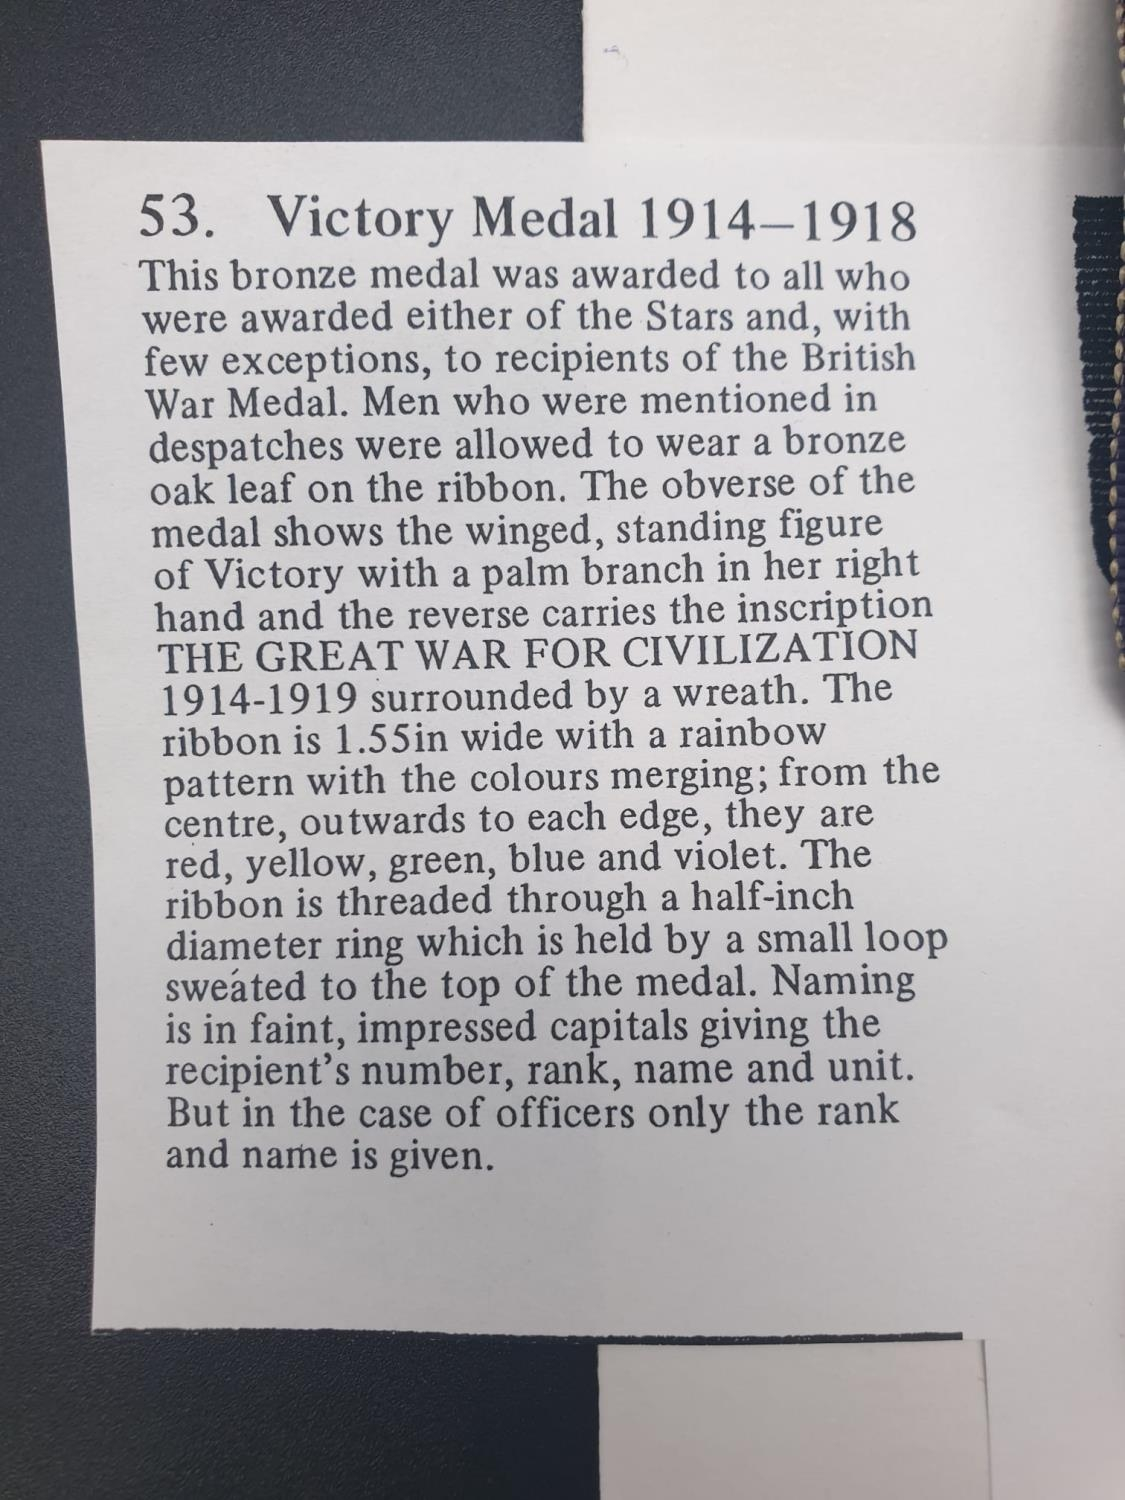 THE GREAT WAR FOR CIVILISATION 1914-18 MEDAL PRESENTED TO DVR J BERRY ROYAL ARTILLERY WITH - Image 4 of 7